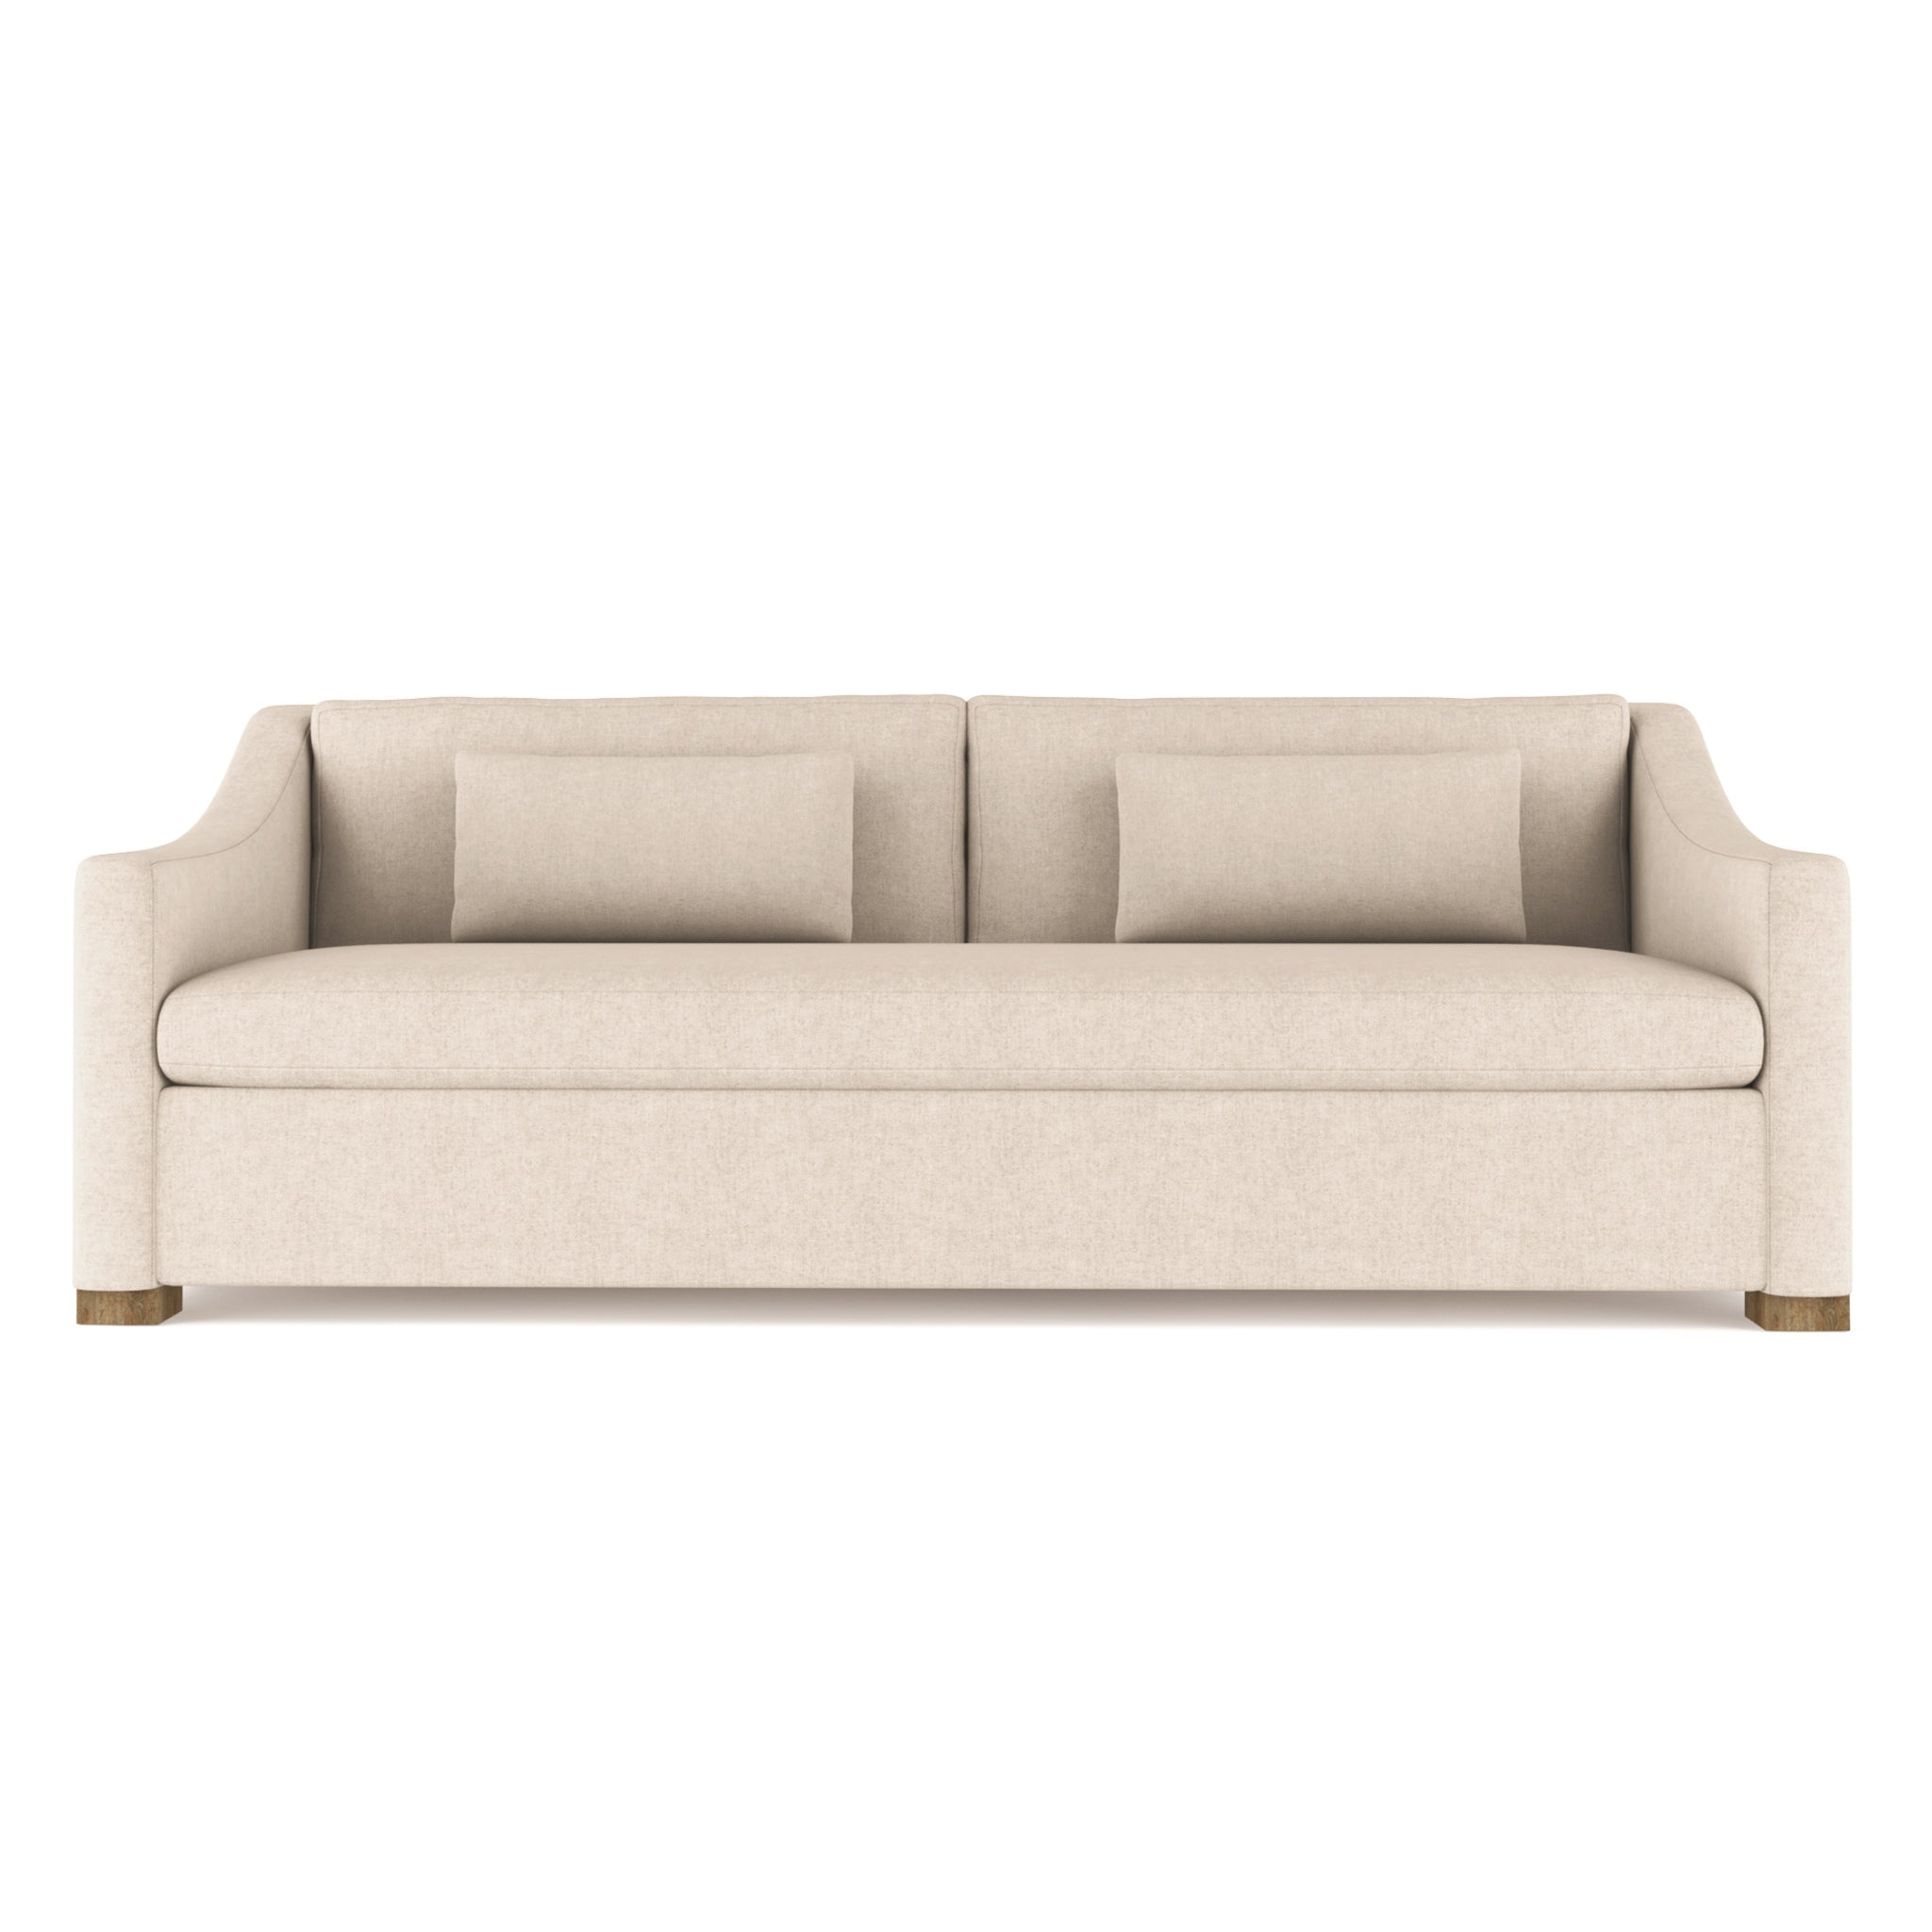 Crosby Sofa - Oyster Plush Velvet